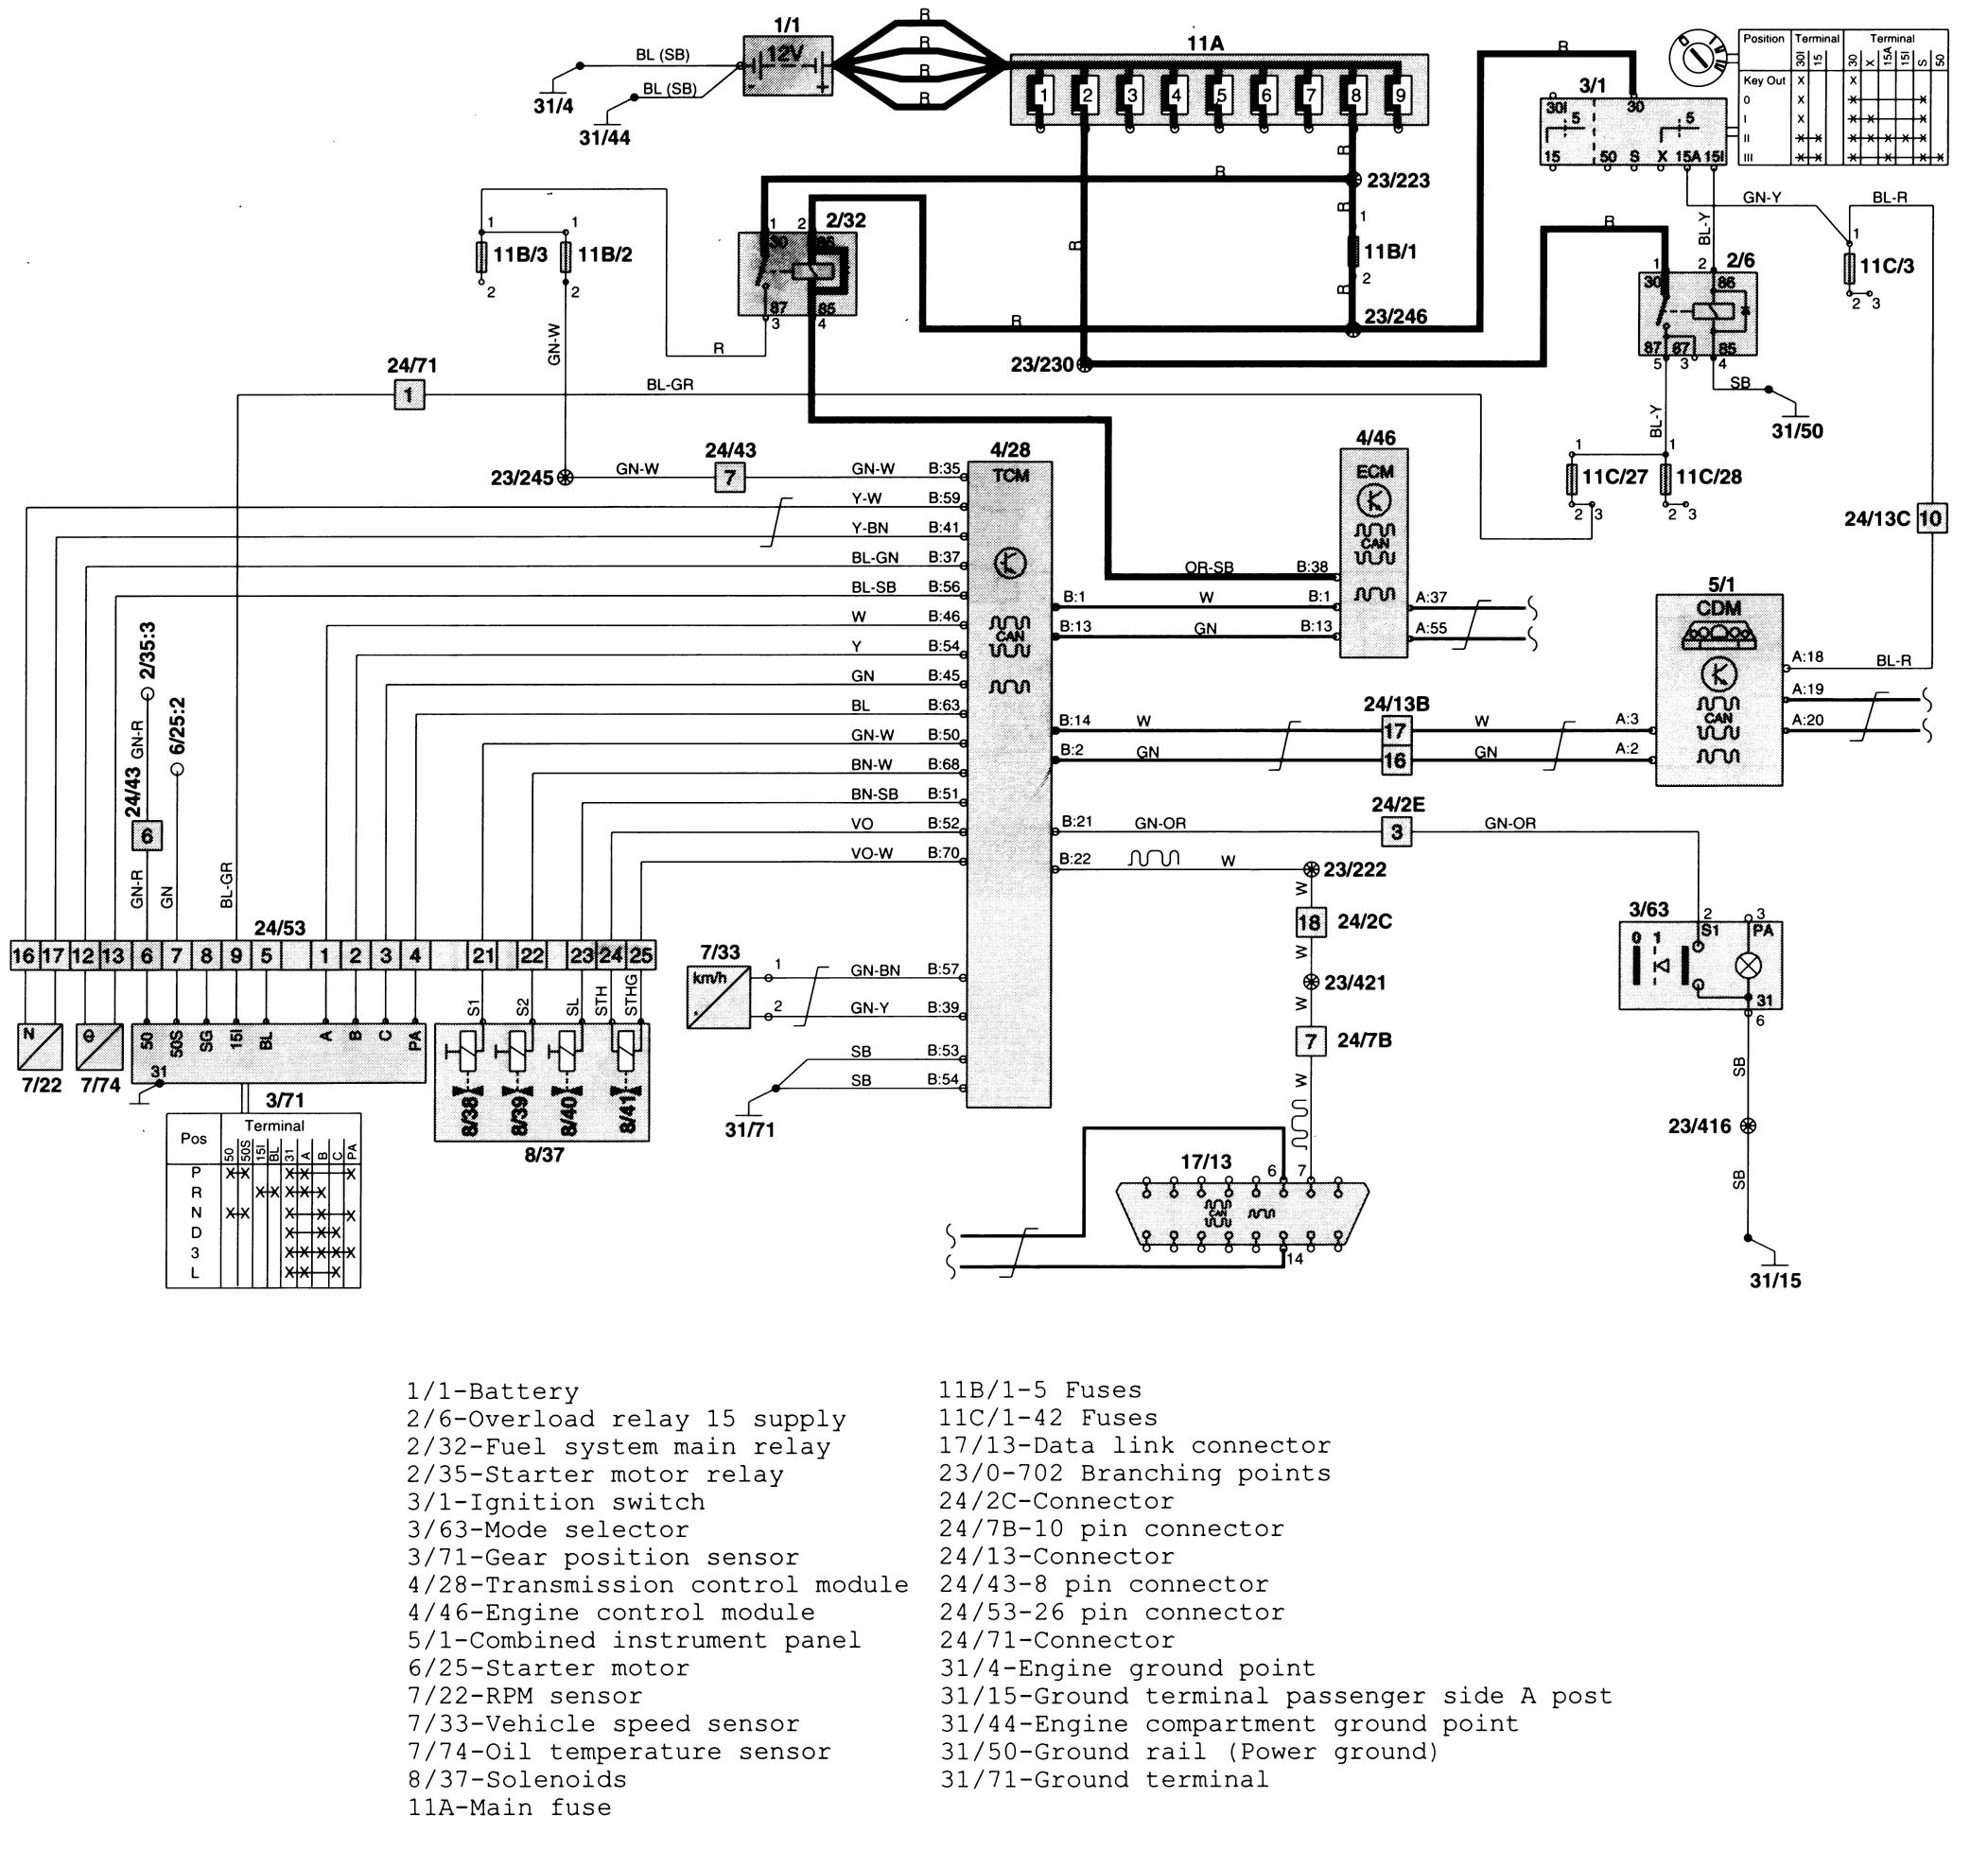 99 Volvo S80 Wiring Diagram 1998 V70 Ignition Switch